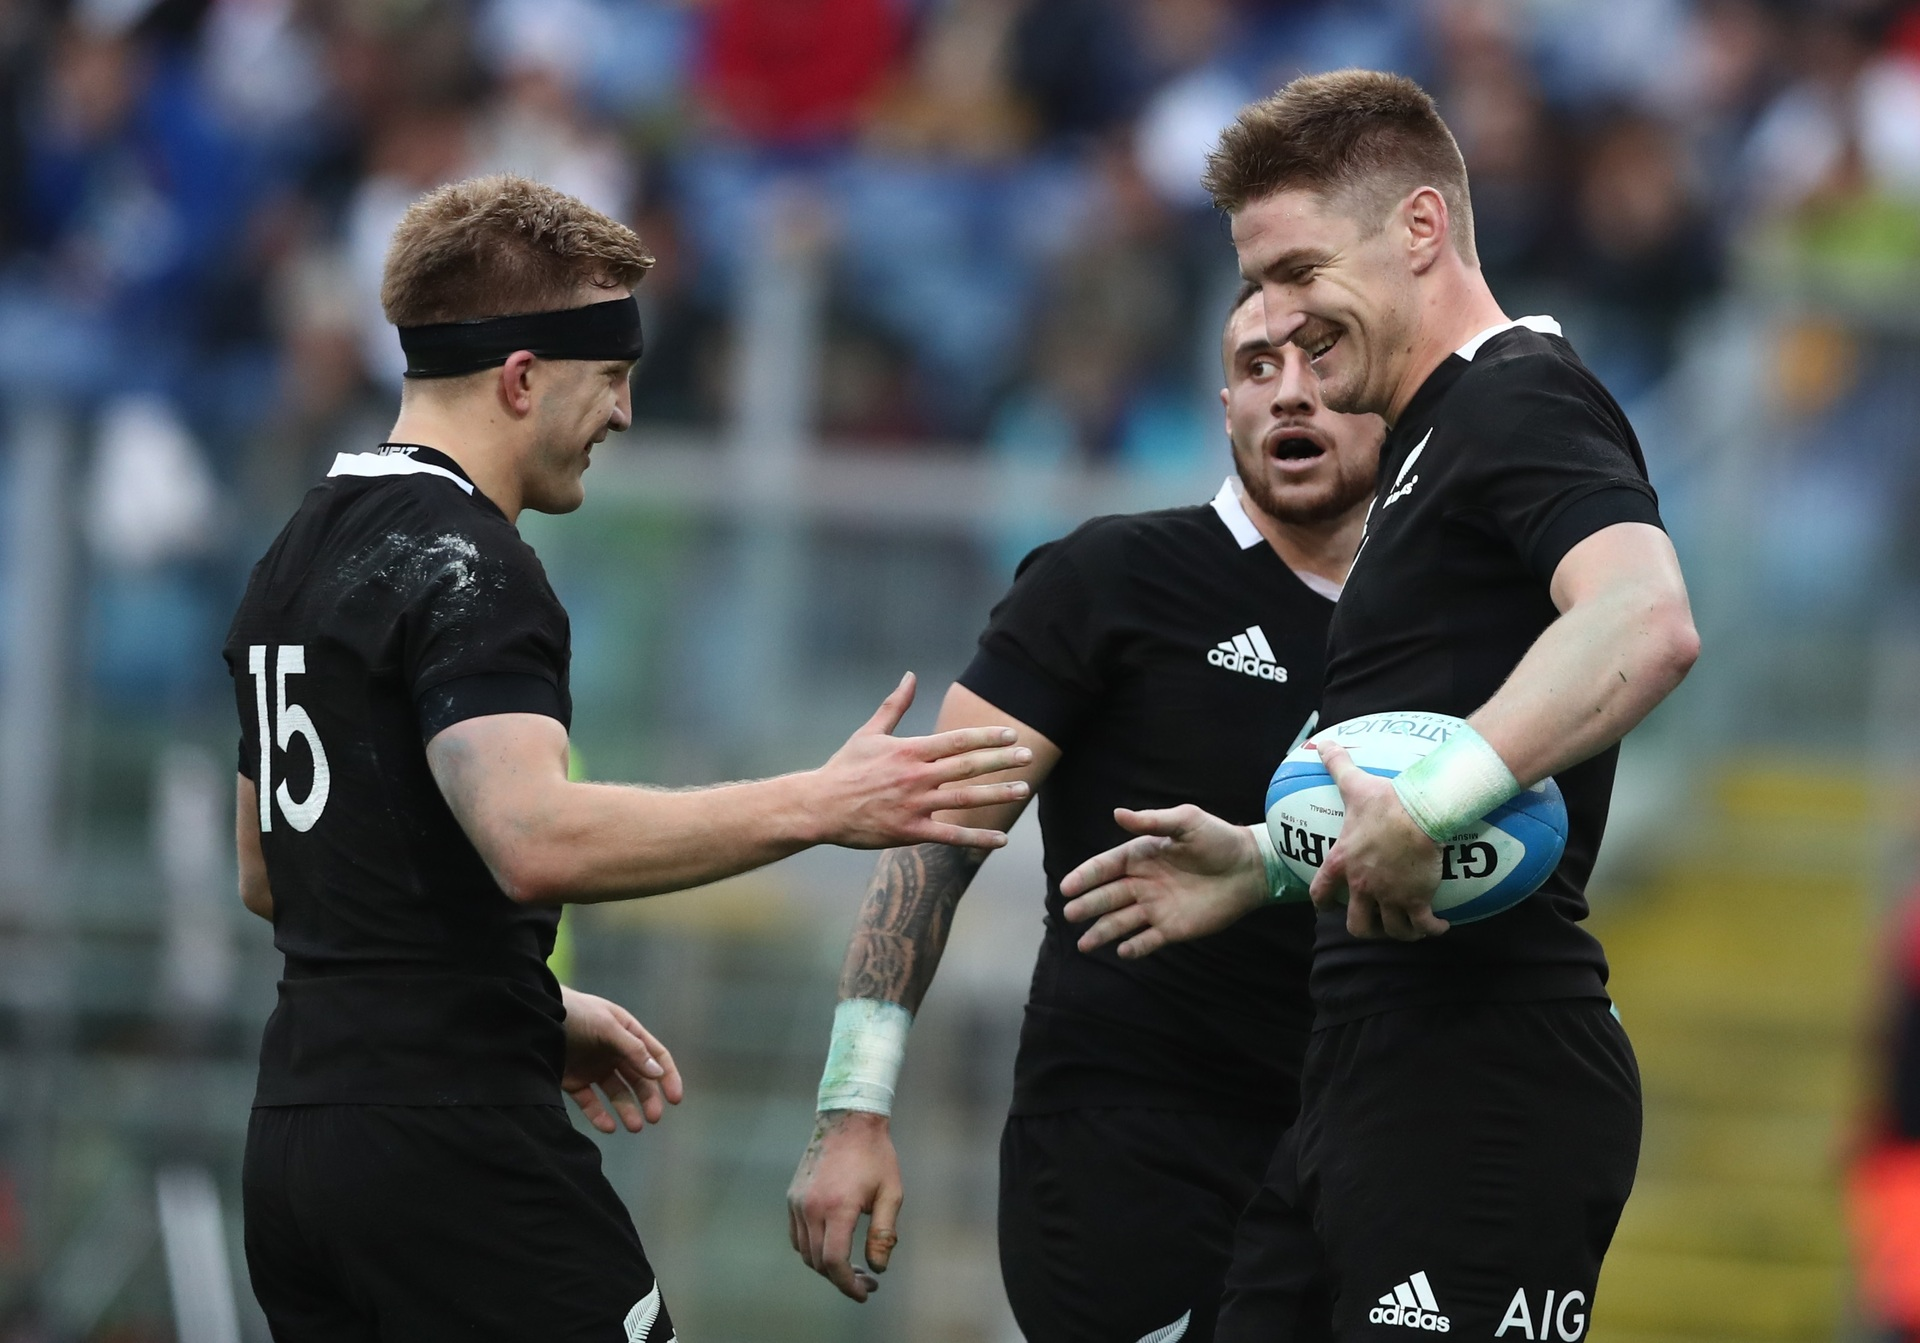 Rugby: World media reacts to the All Blacks' 66-3 win over Italy